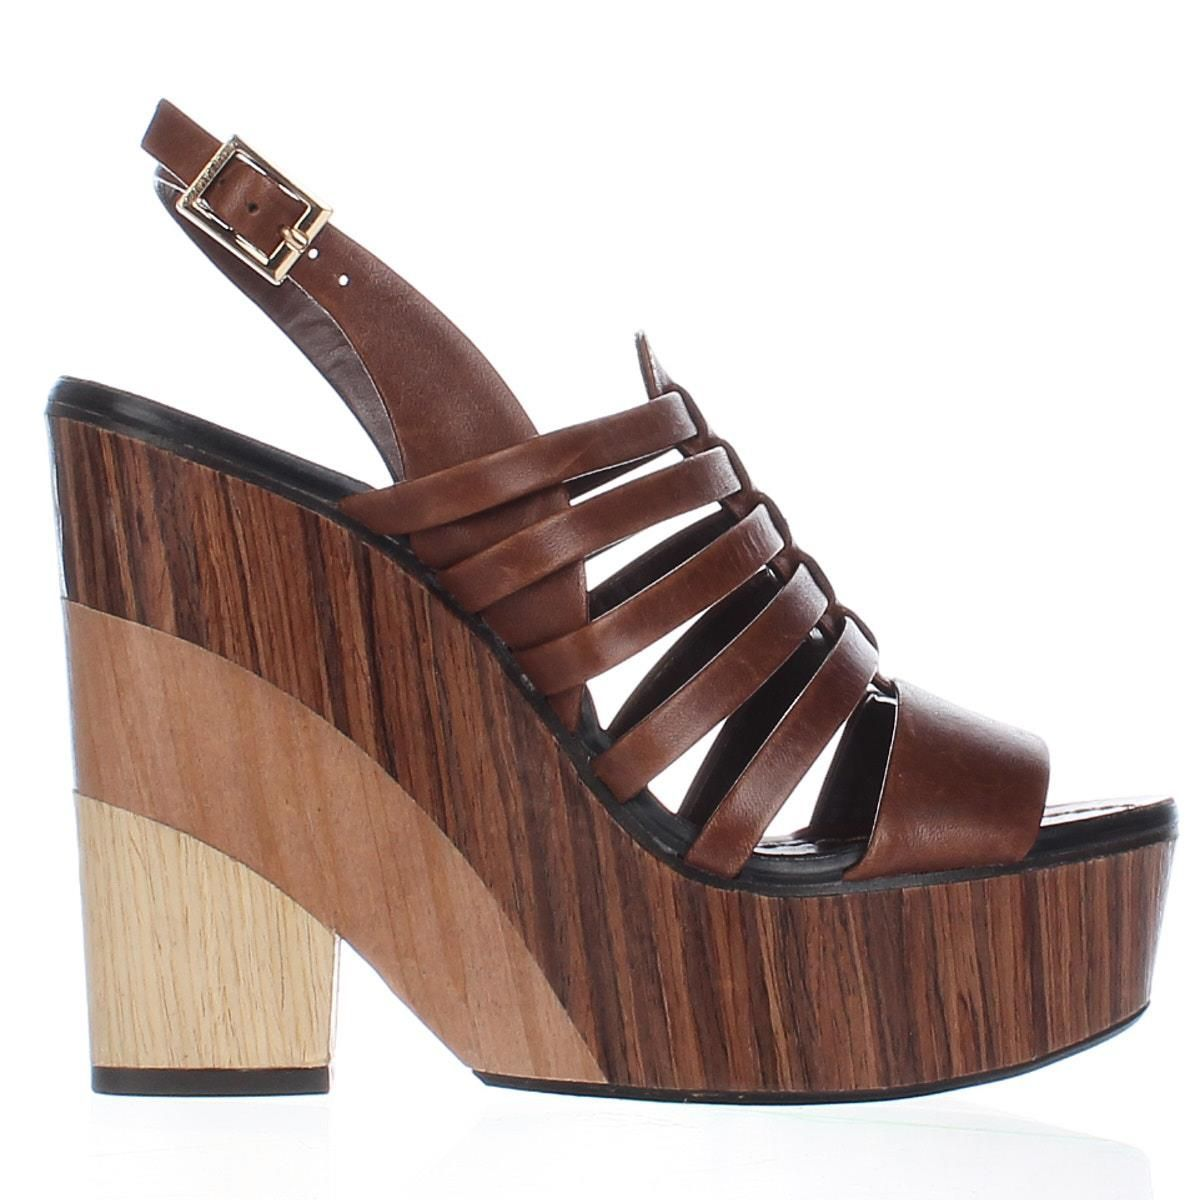 ccc32134735 Vince Camuto Onia Platform Strappy Sandals